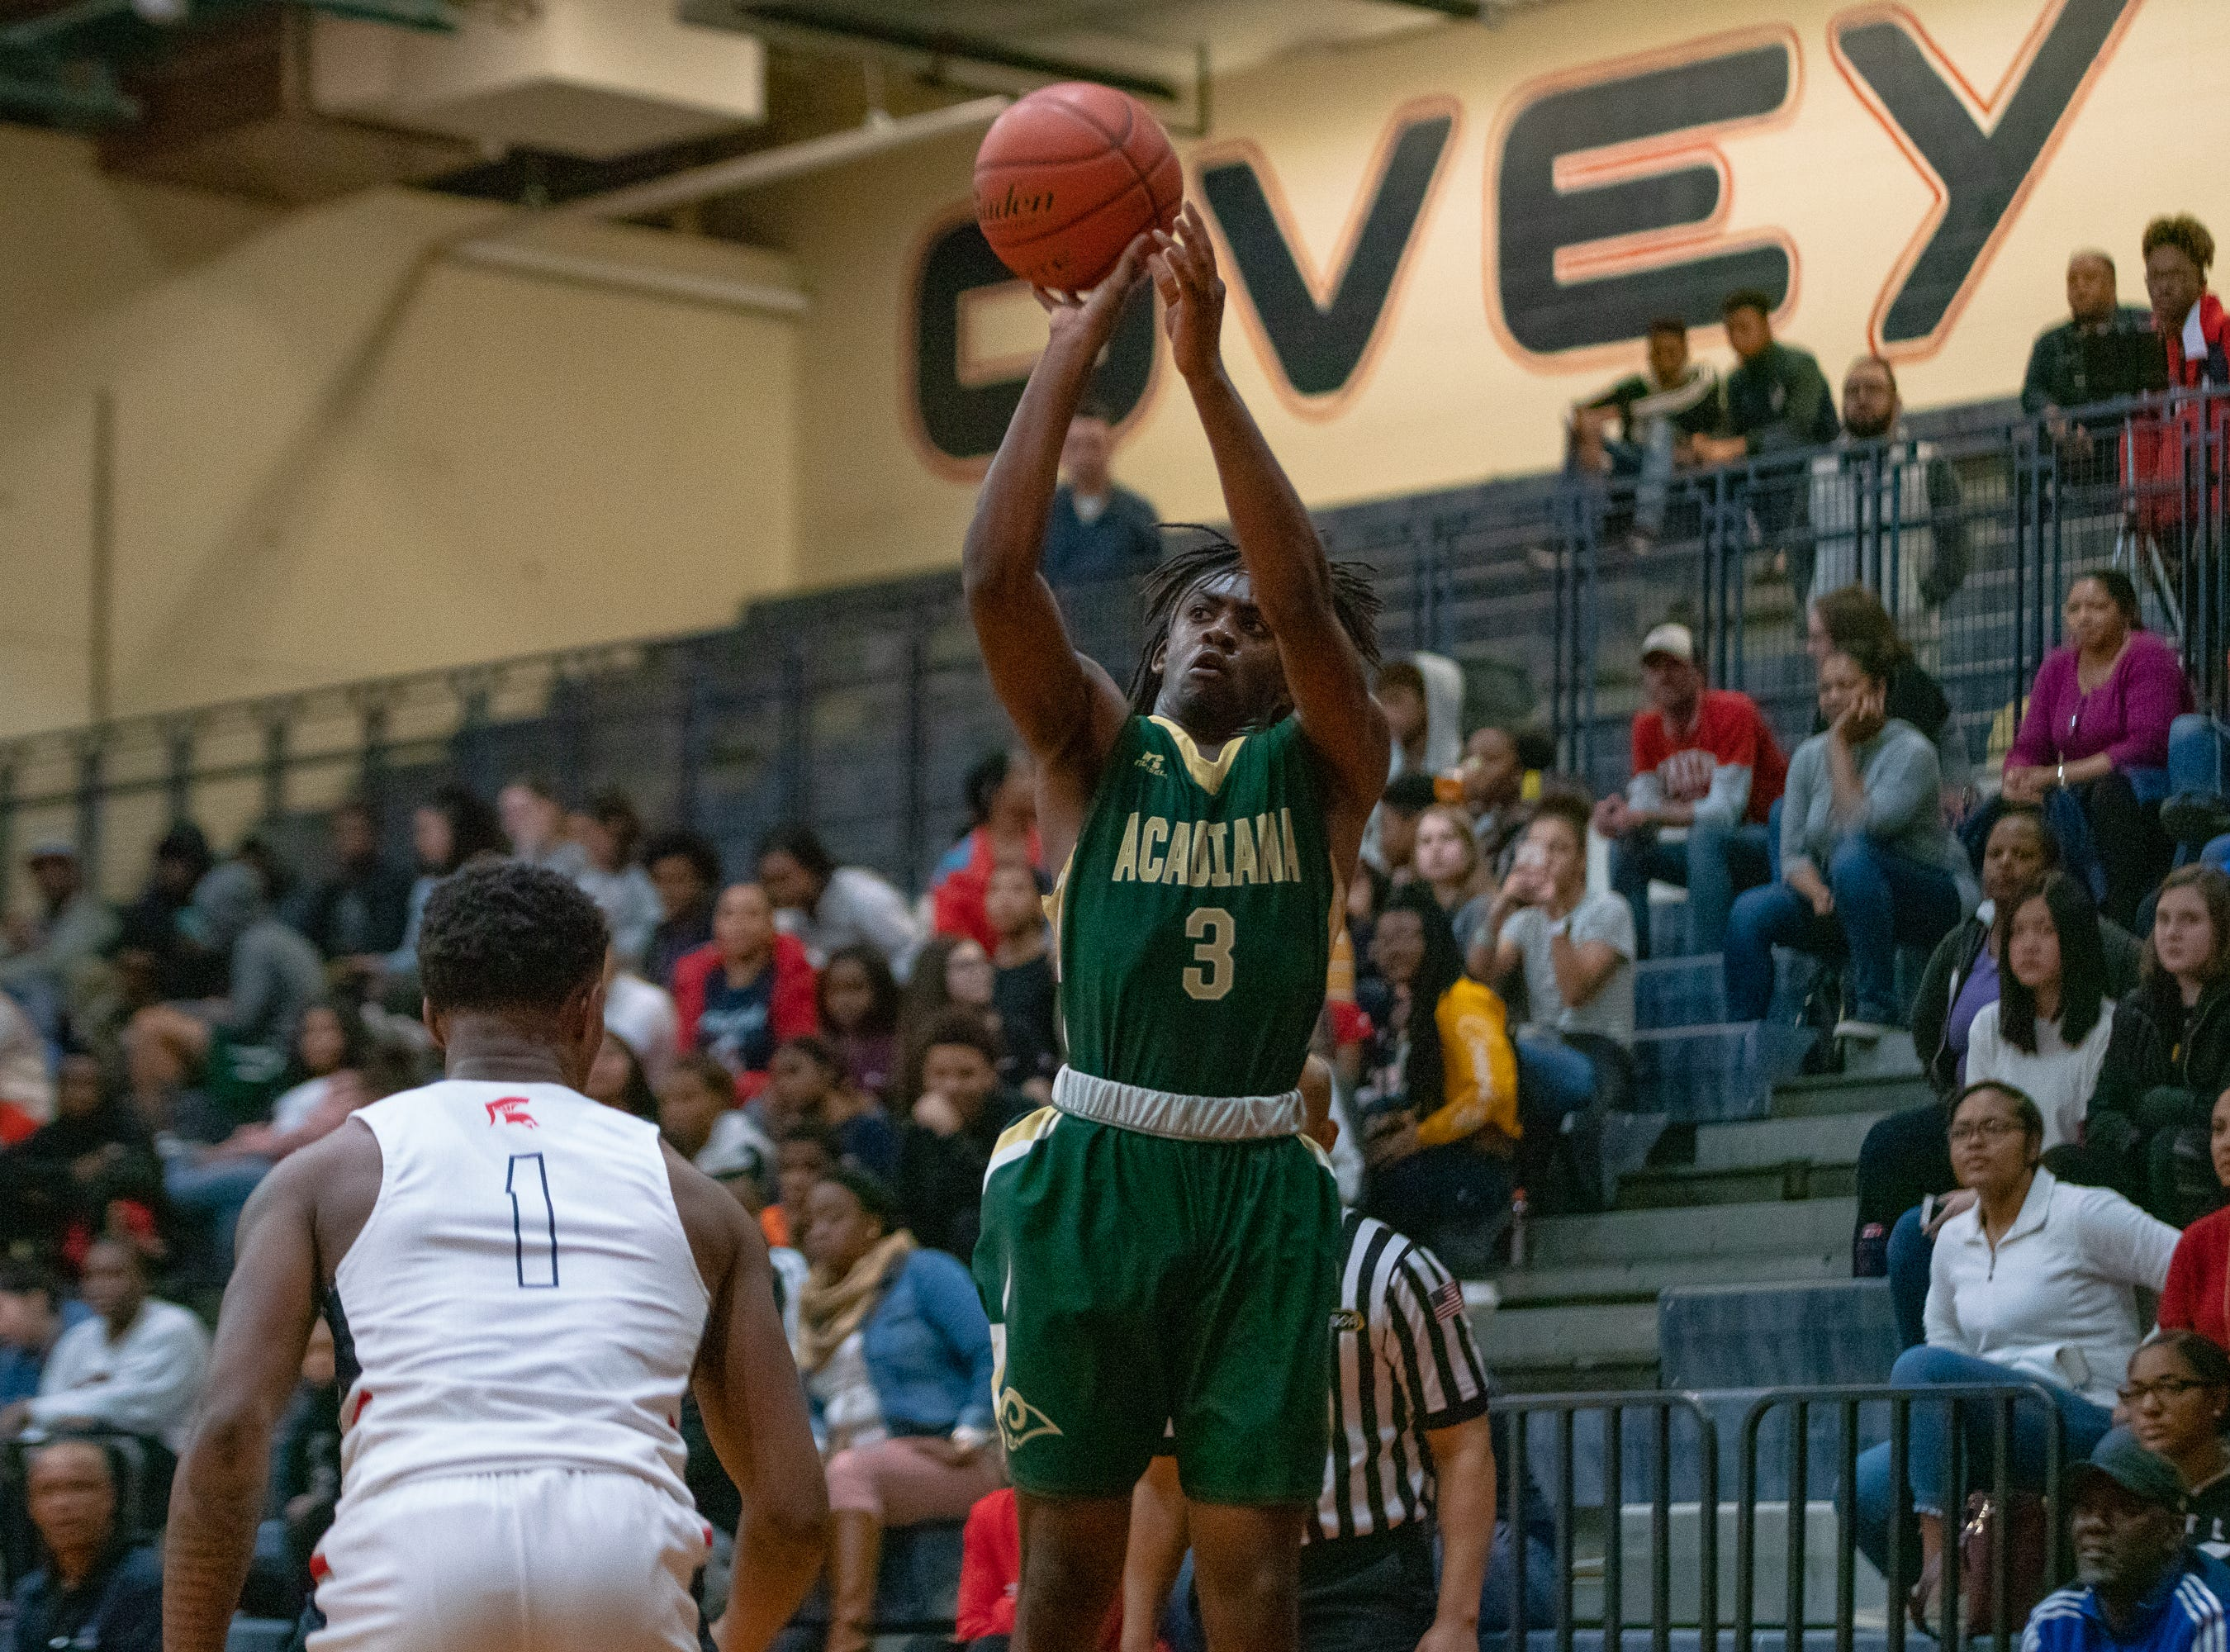 Acadiana High's Justin Dickerson (3) shoots a 3-pointer as the Comeaux High Spartans take on the Acadiana High Wreckin' Rams at Comeaux High School on Jan. 25, 2019.